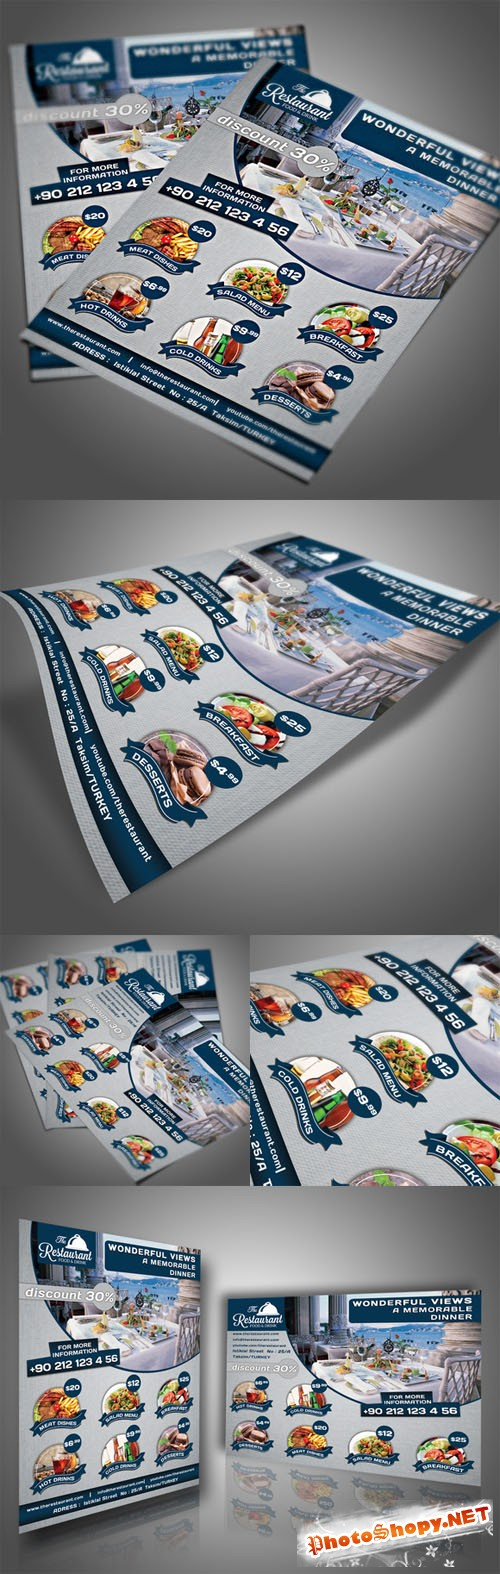 Restaurant Flyer Template - Creativemarket 203281